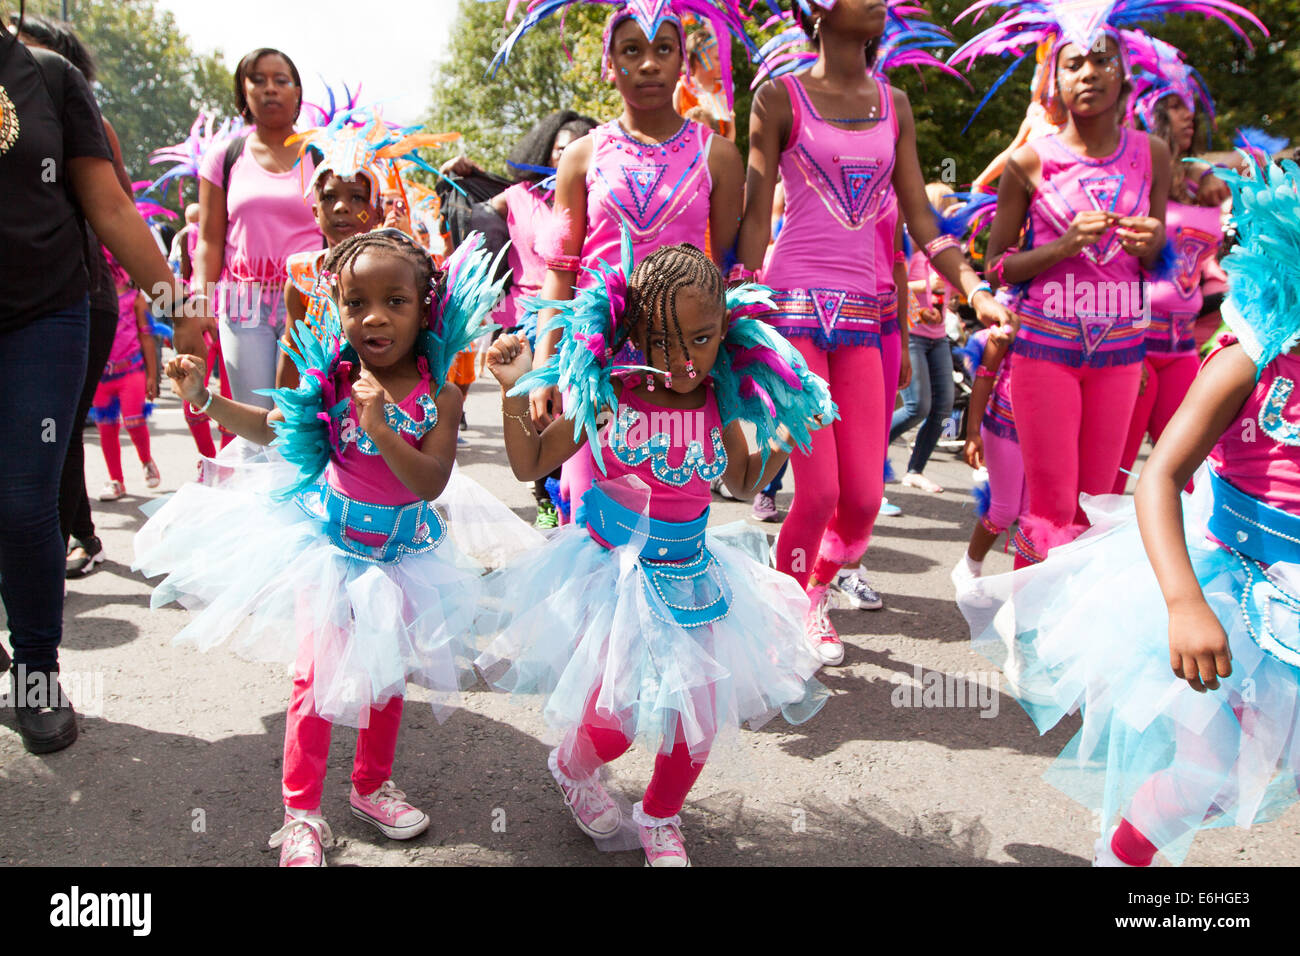 Notting Hill Carnival 2014, Notting Hill, West London, London, UK 24th August 2014 Family Day at the Carnival 2014 Stock Photo